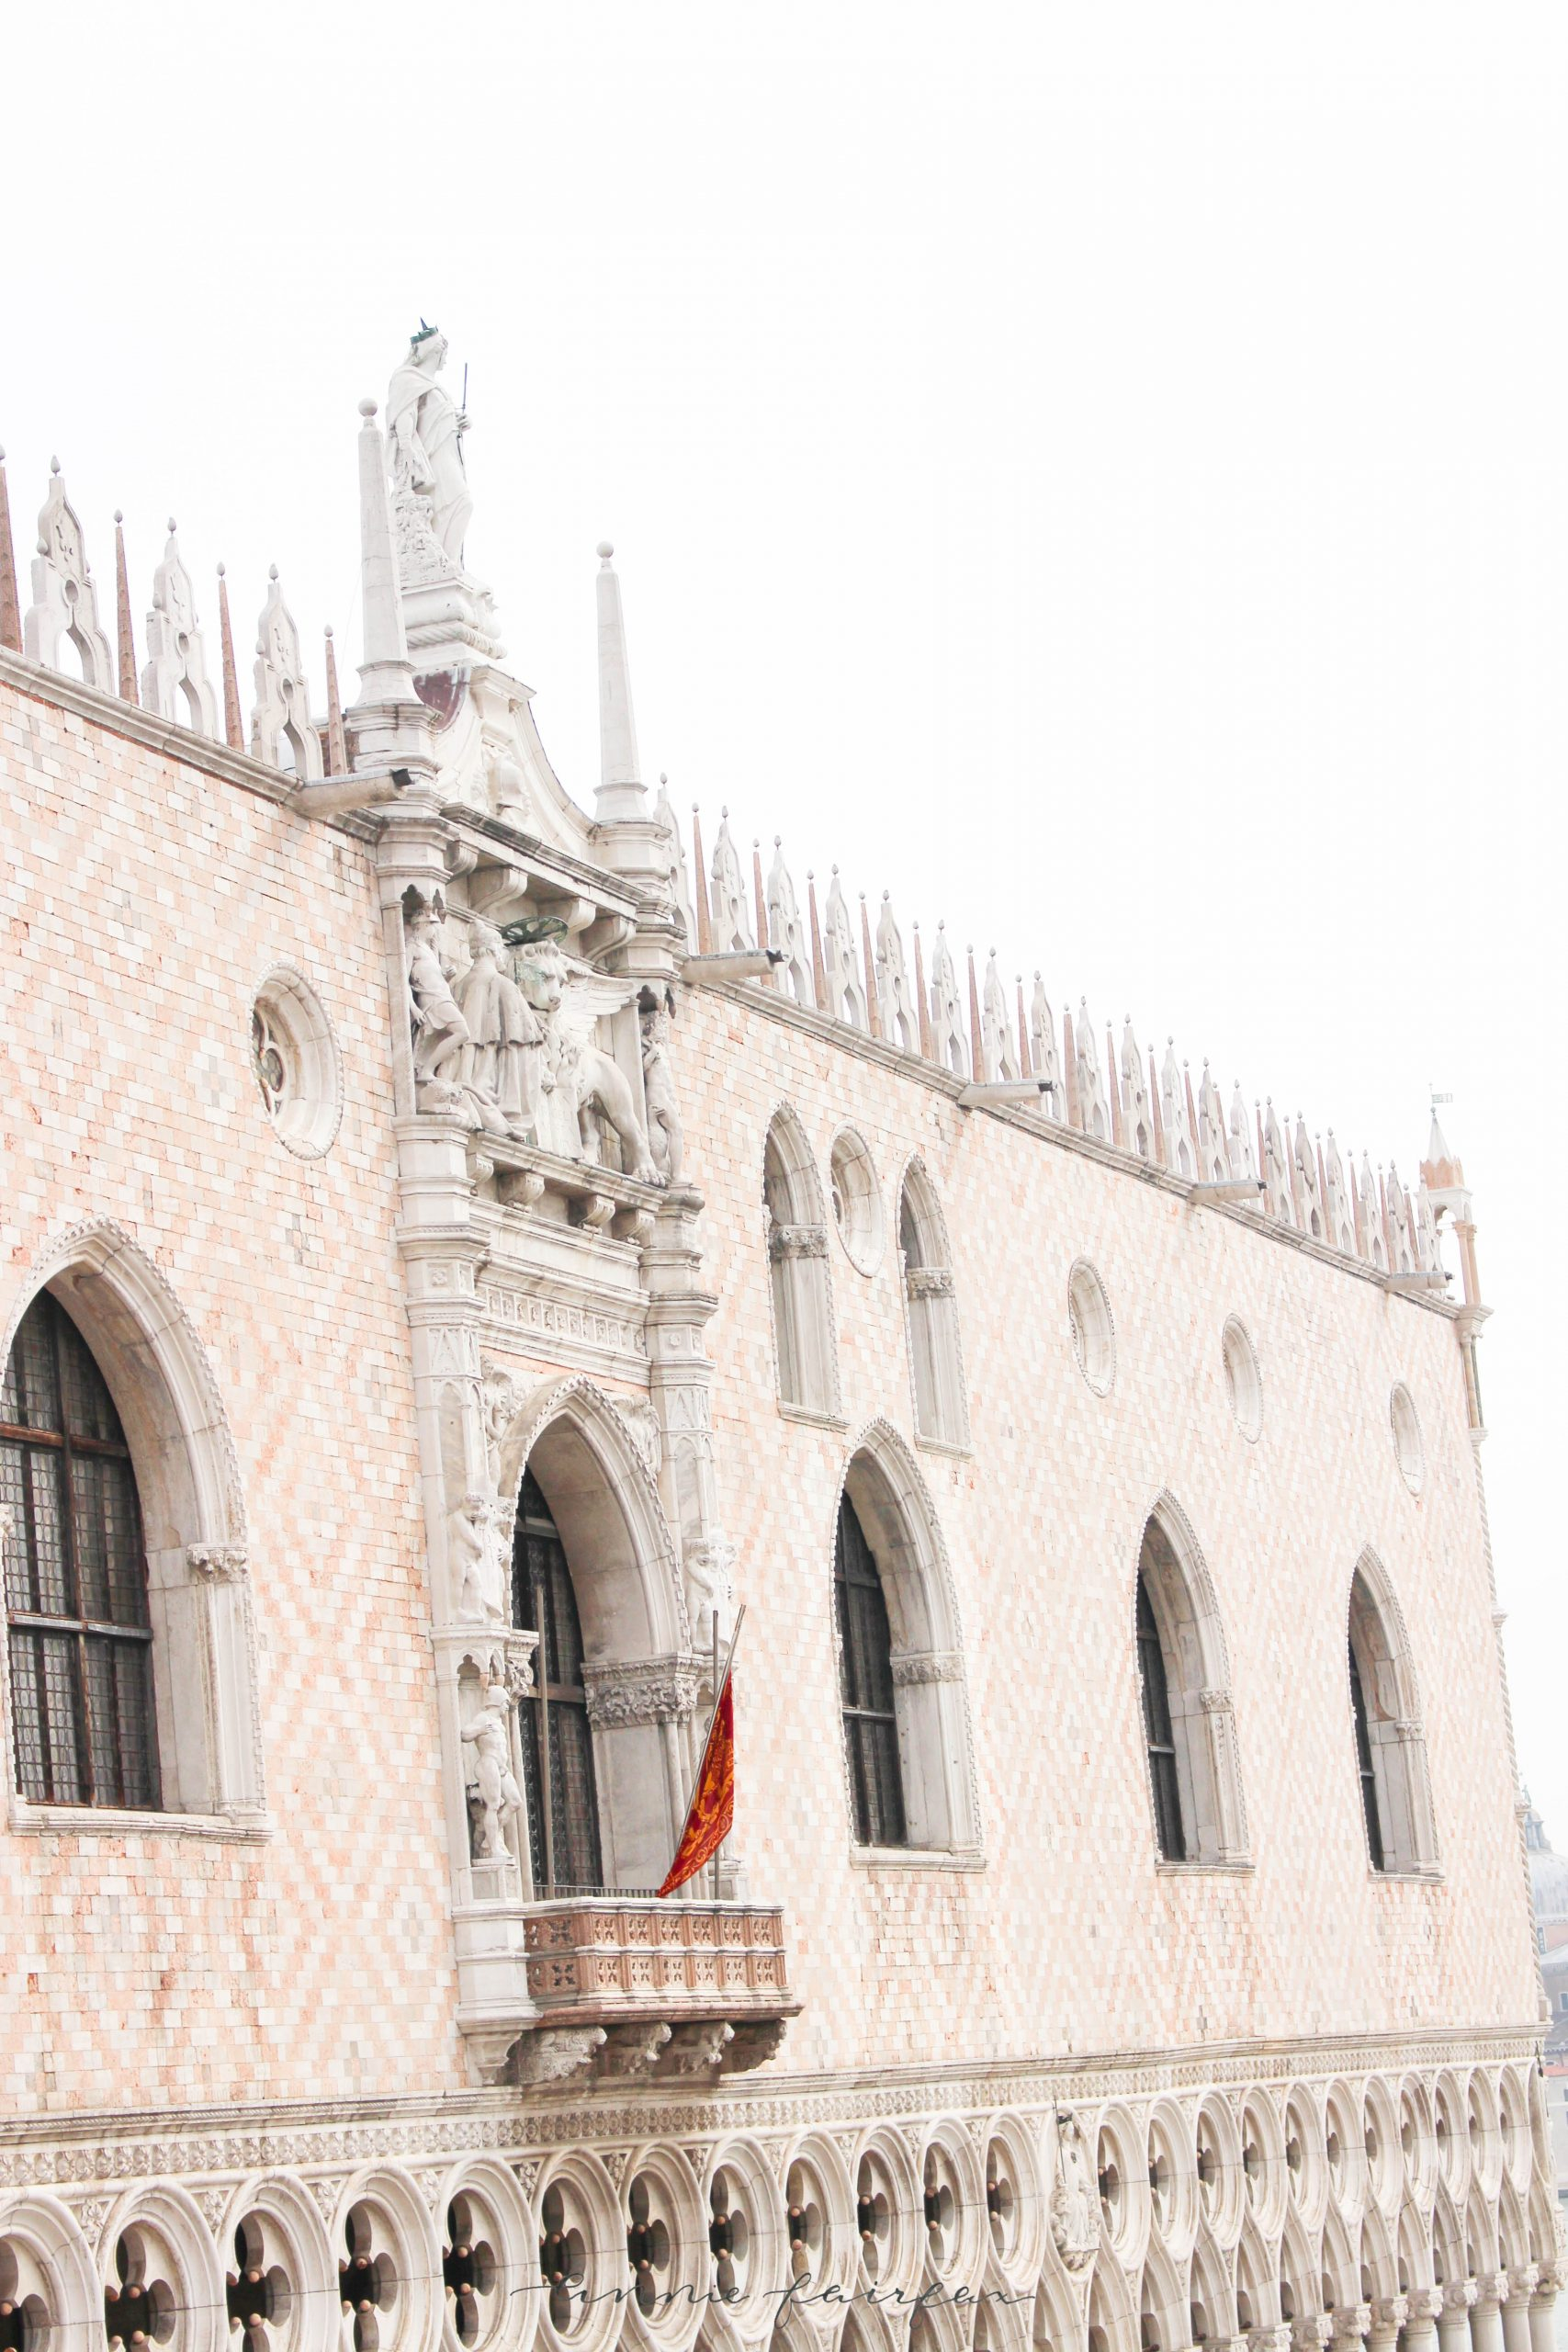 Dodge's Palace in Venice, Italy Venezia Italia Incredible Things To See and Do in Venezia by Annie Fairfax